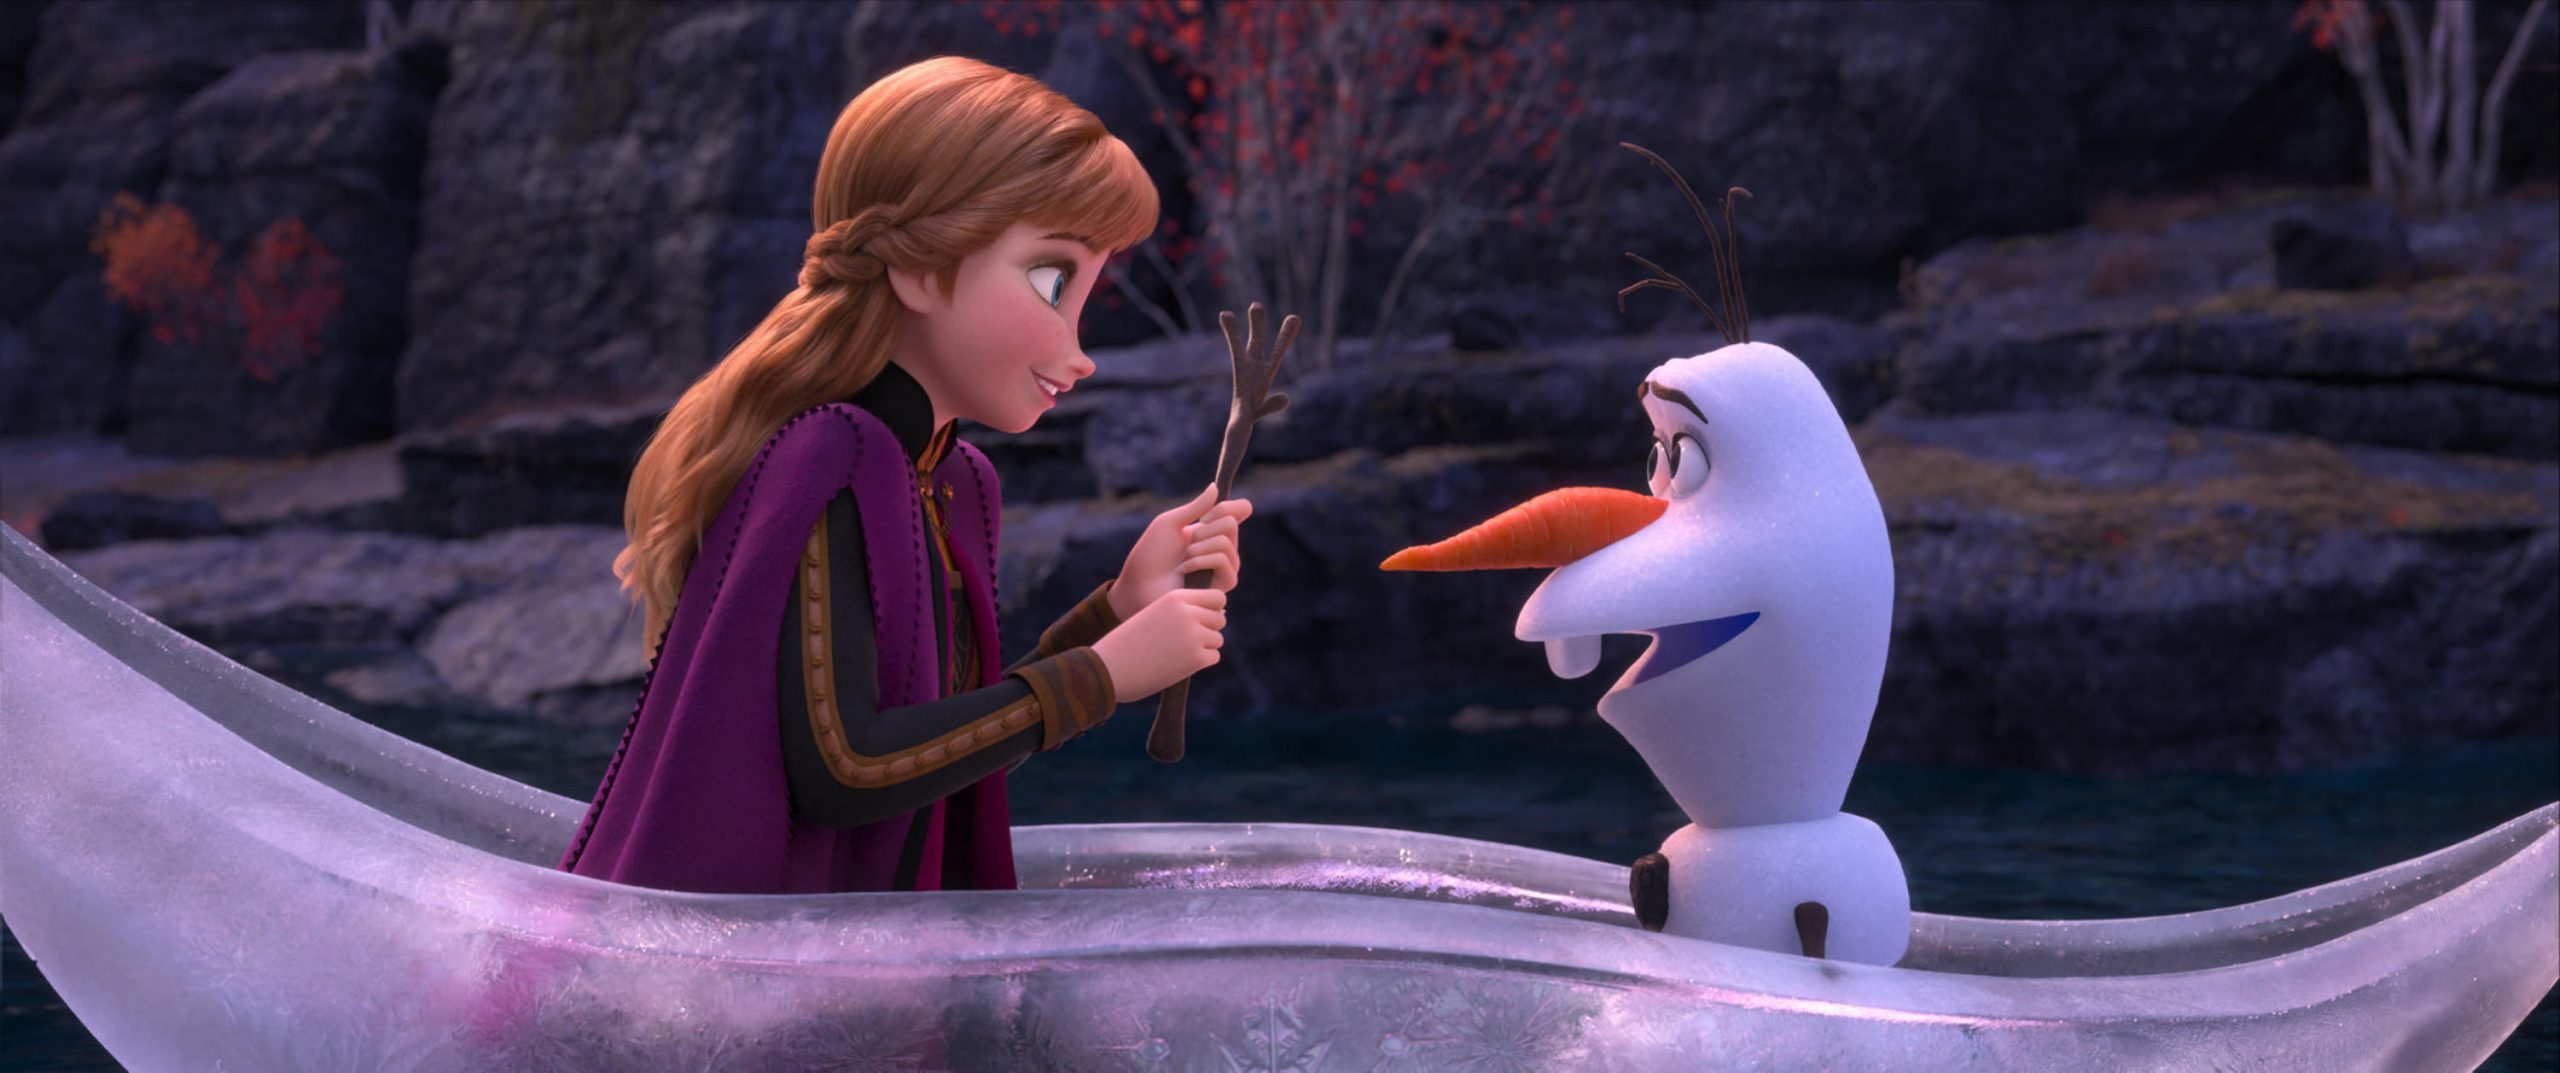 How to watch Frozen 2 on Disney Plus UK and what time will it be available?